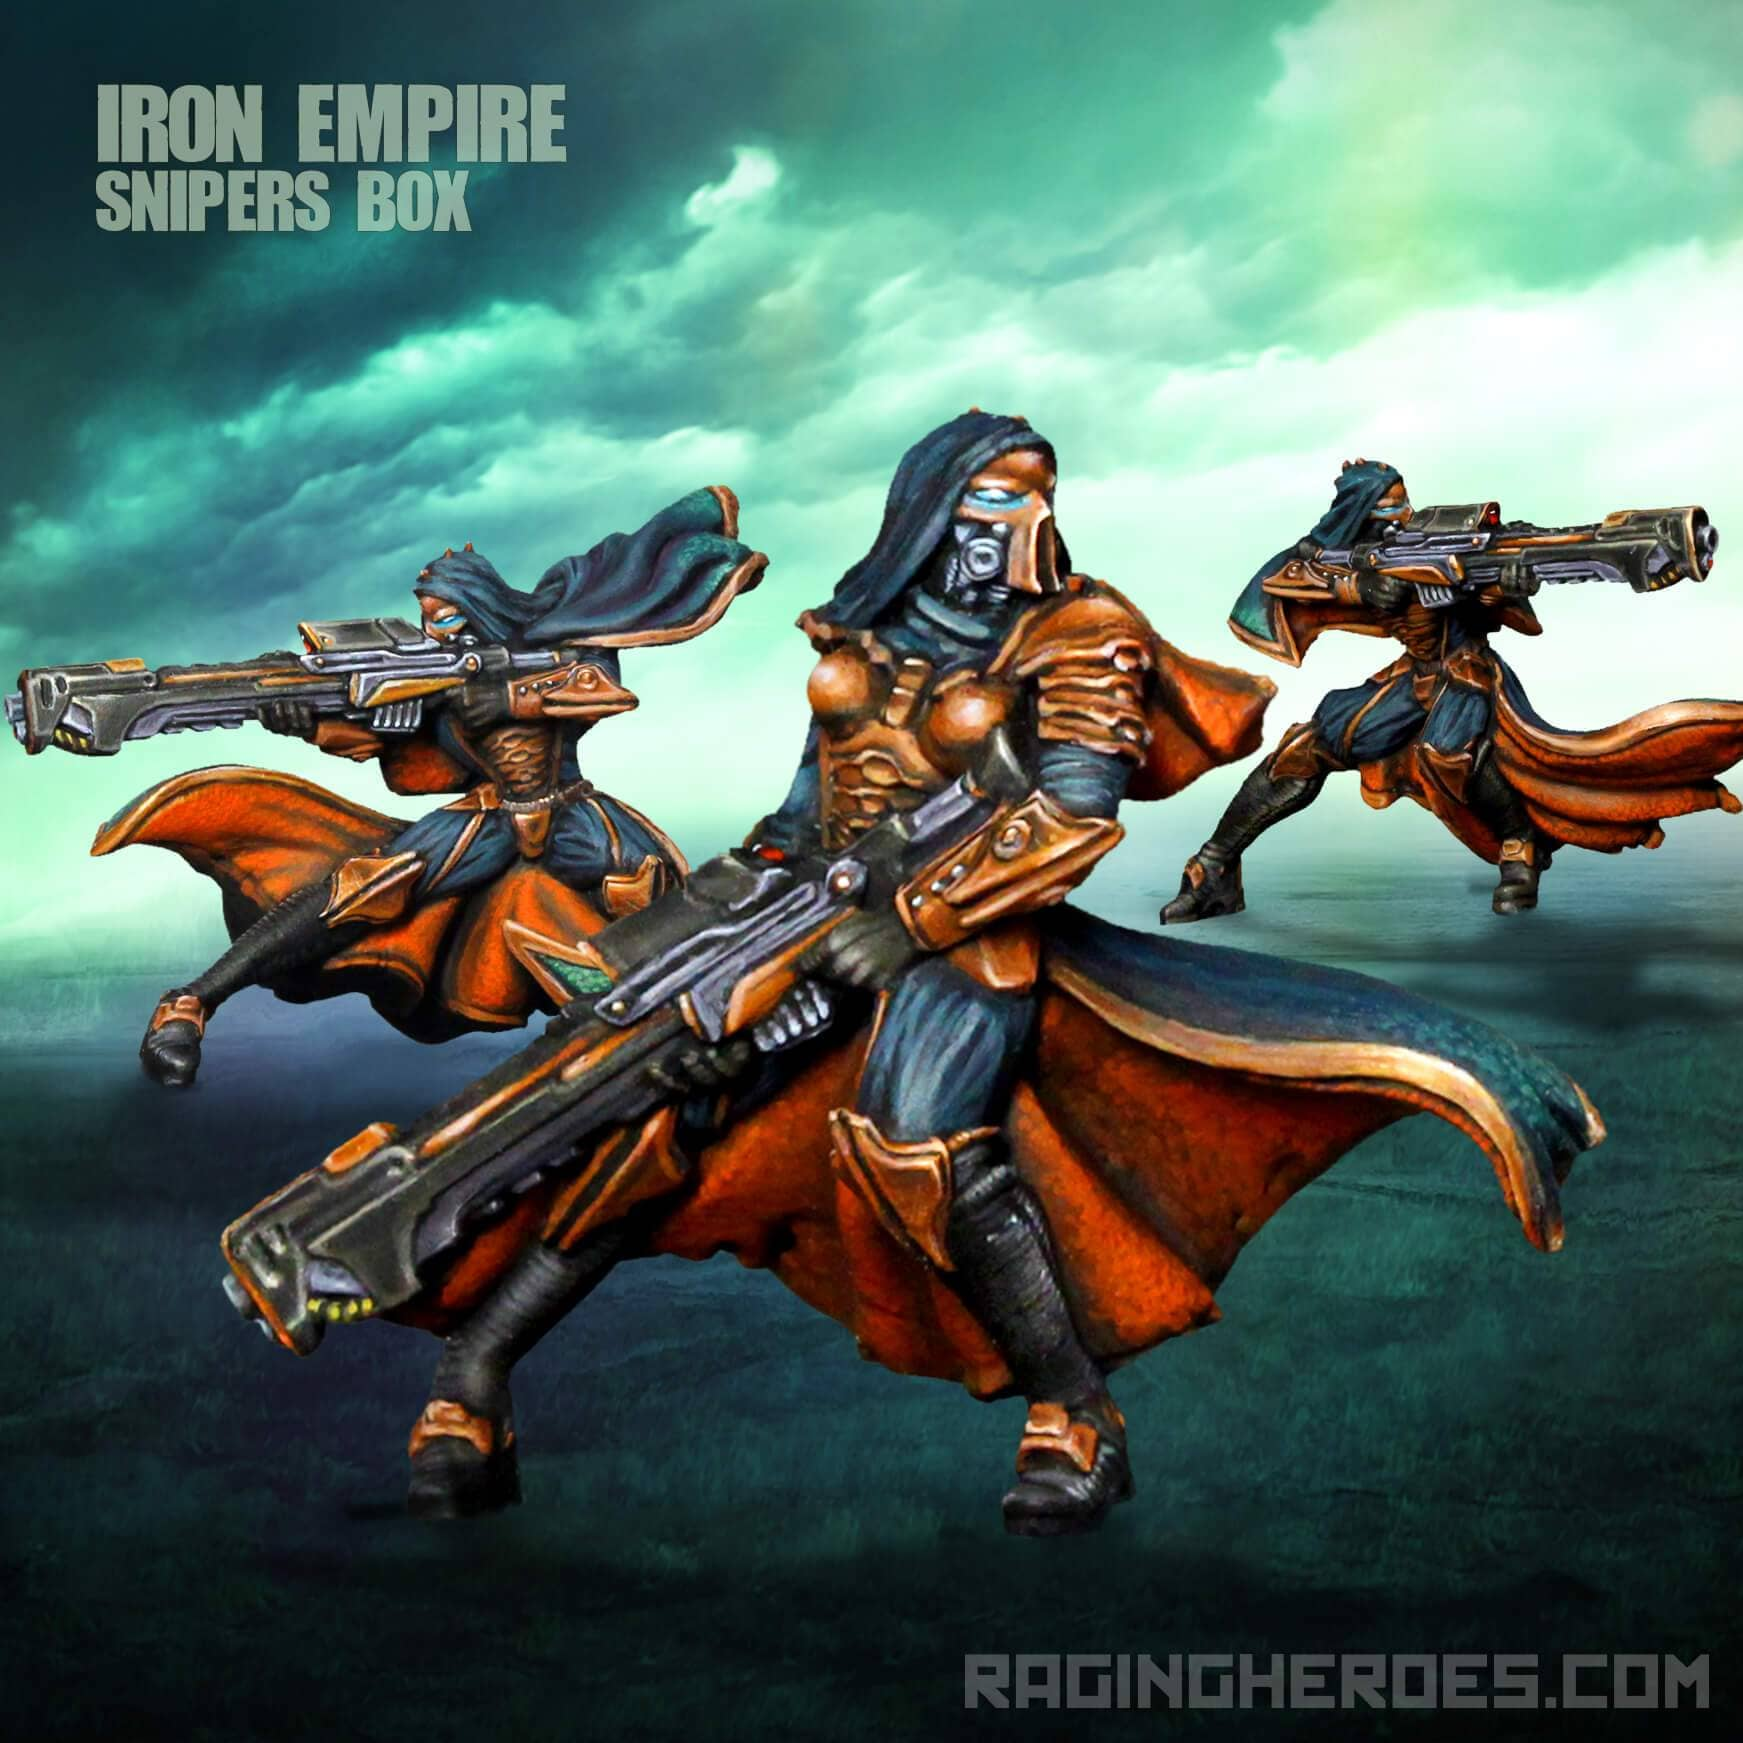 Iron Empire Sniper Unit - Raging Heroes